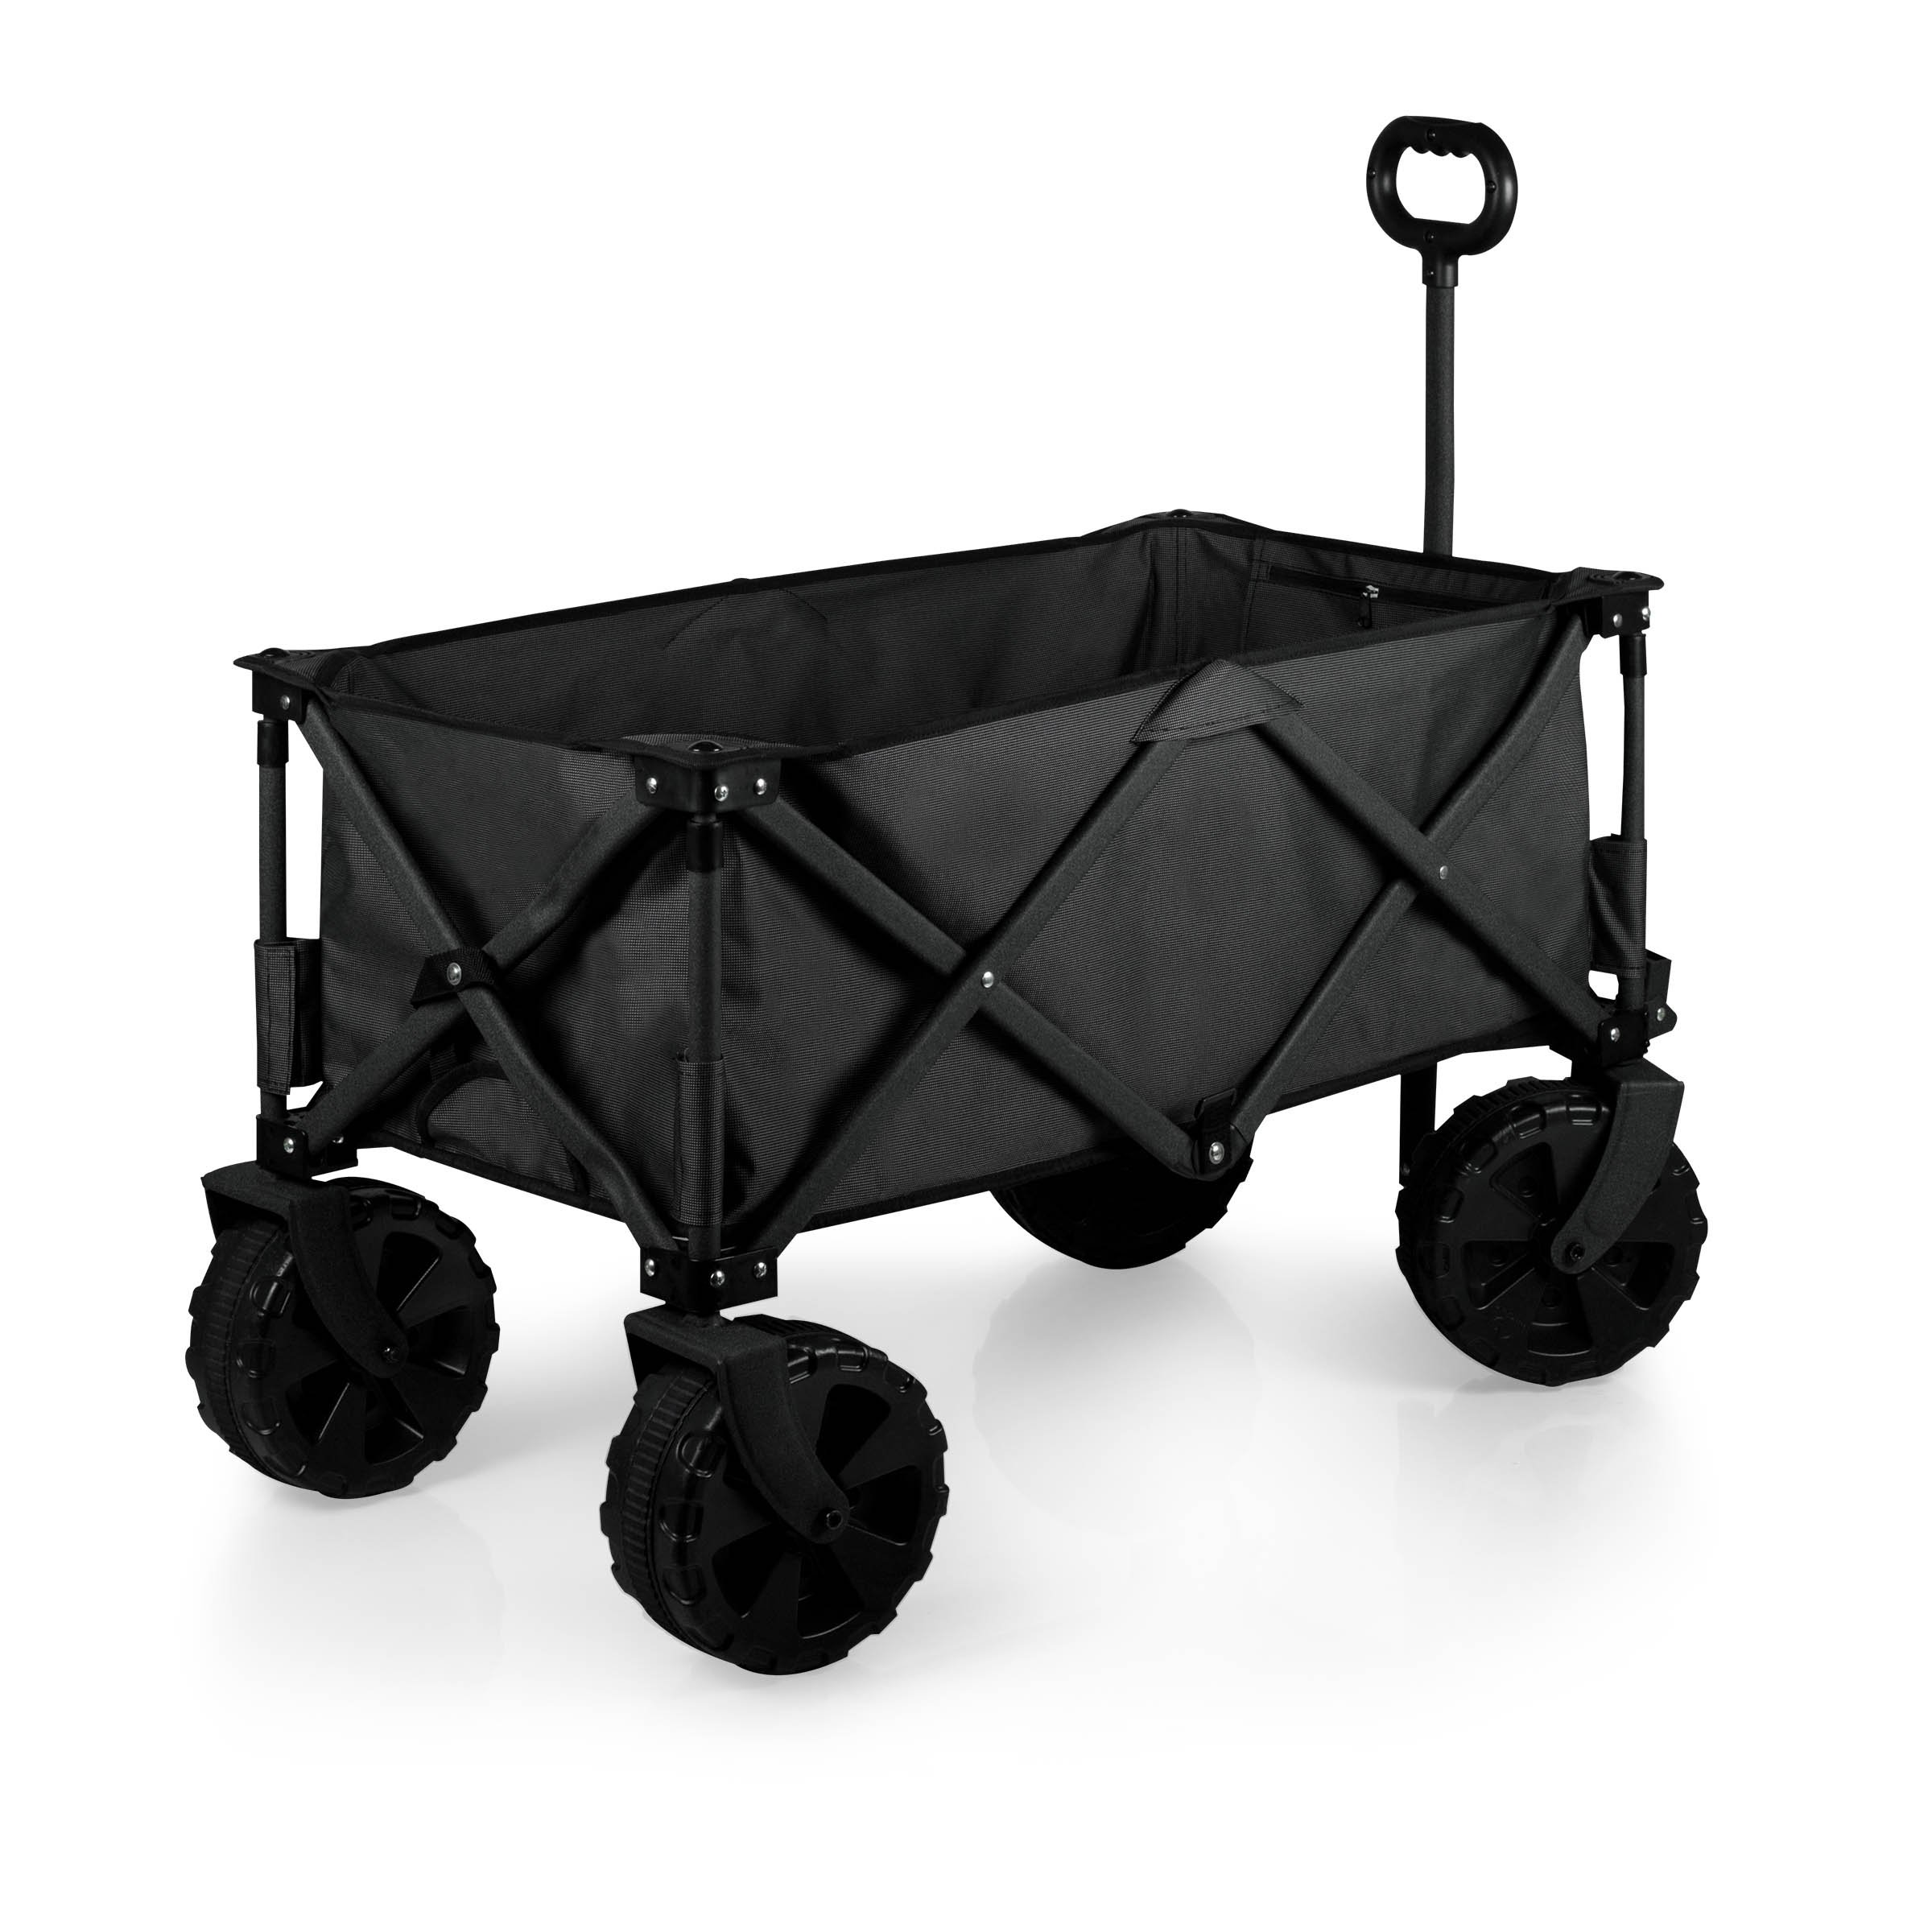 Picnic Time Collapsible Adventure Wagon with All-Terrain Wheels, Black/Gray